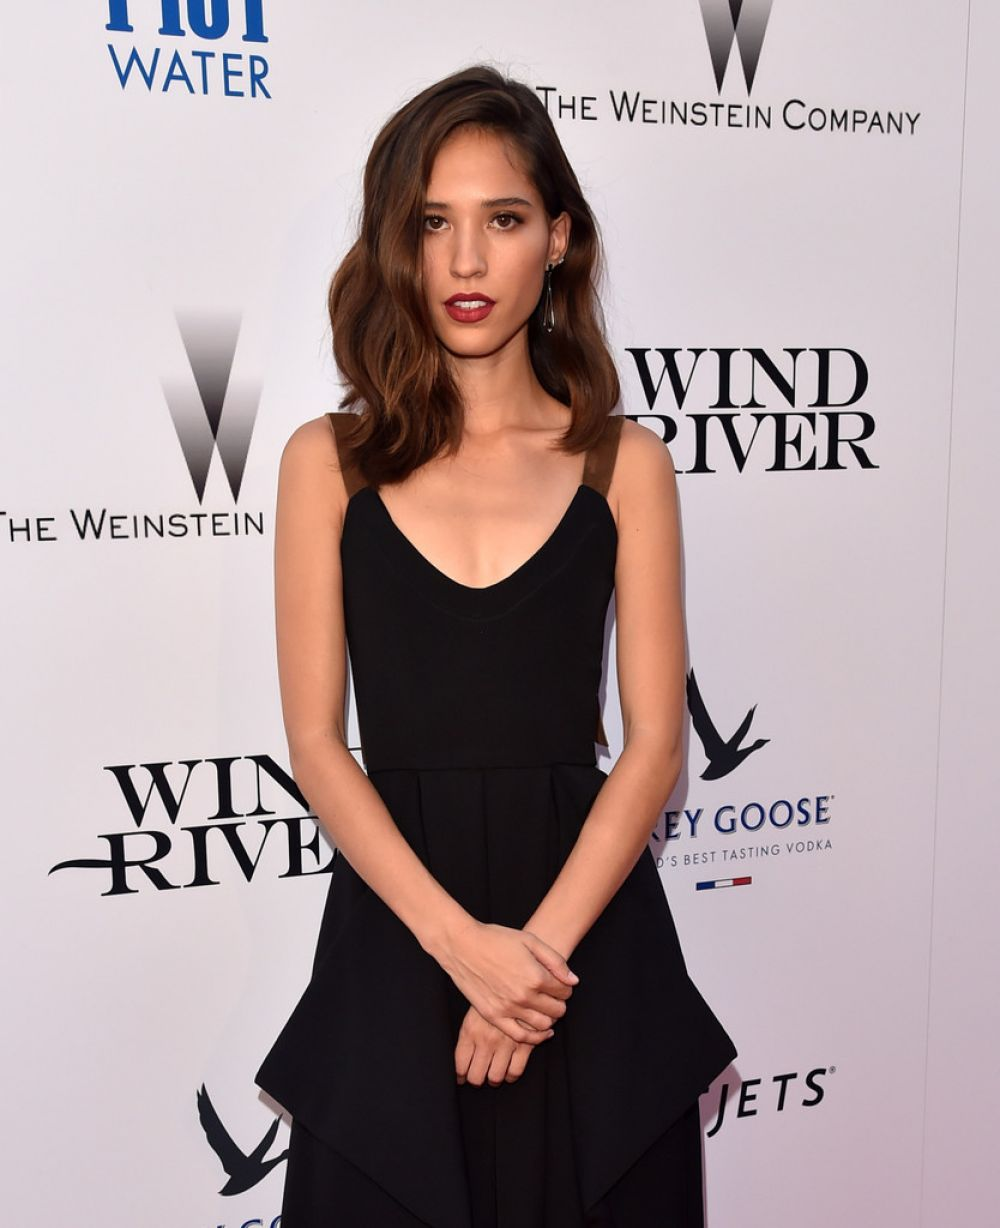 KELSEY ASBILLE CHOW at Wind River Premiere in Los Angeles 07/26/2017